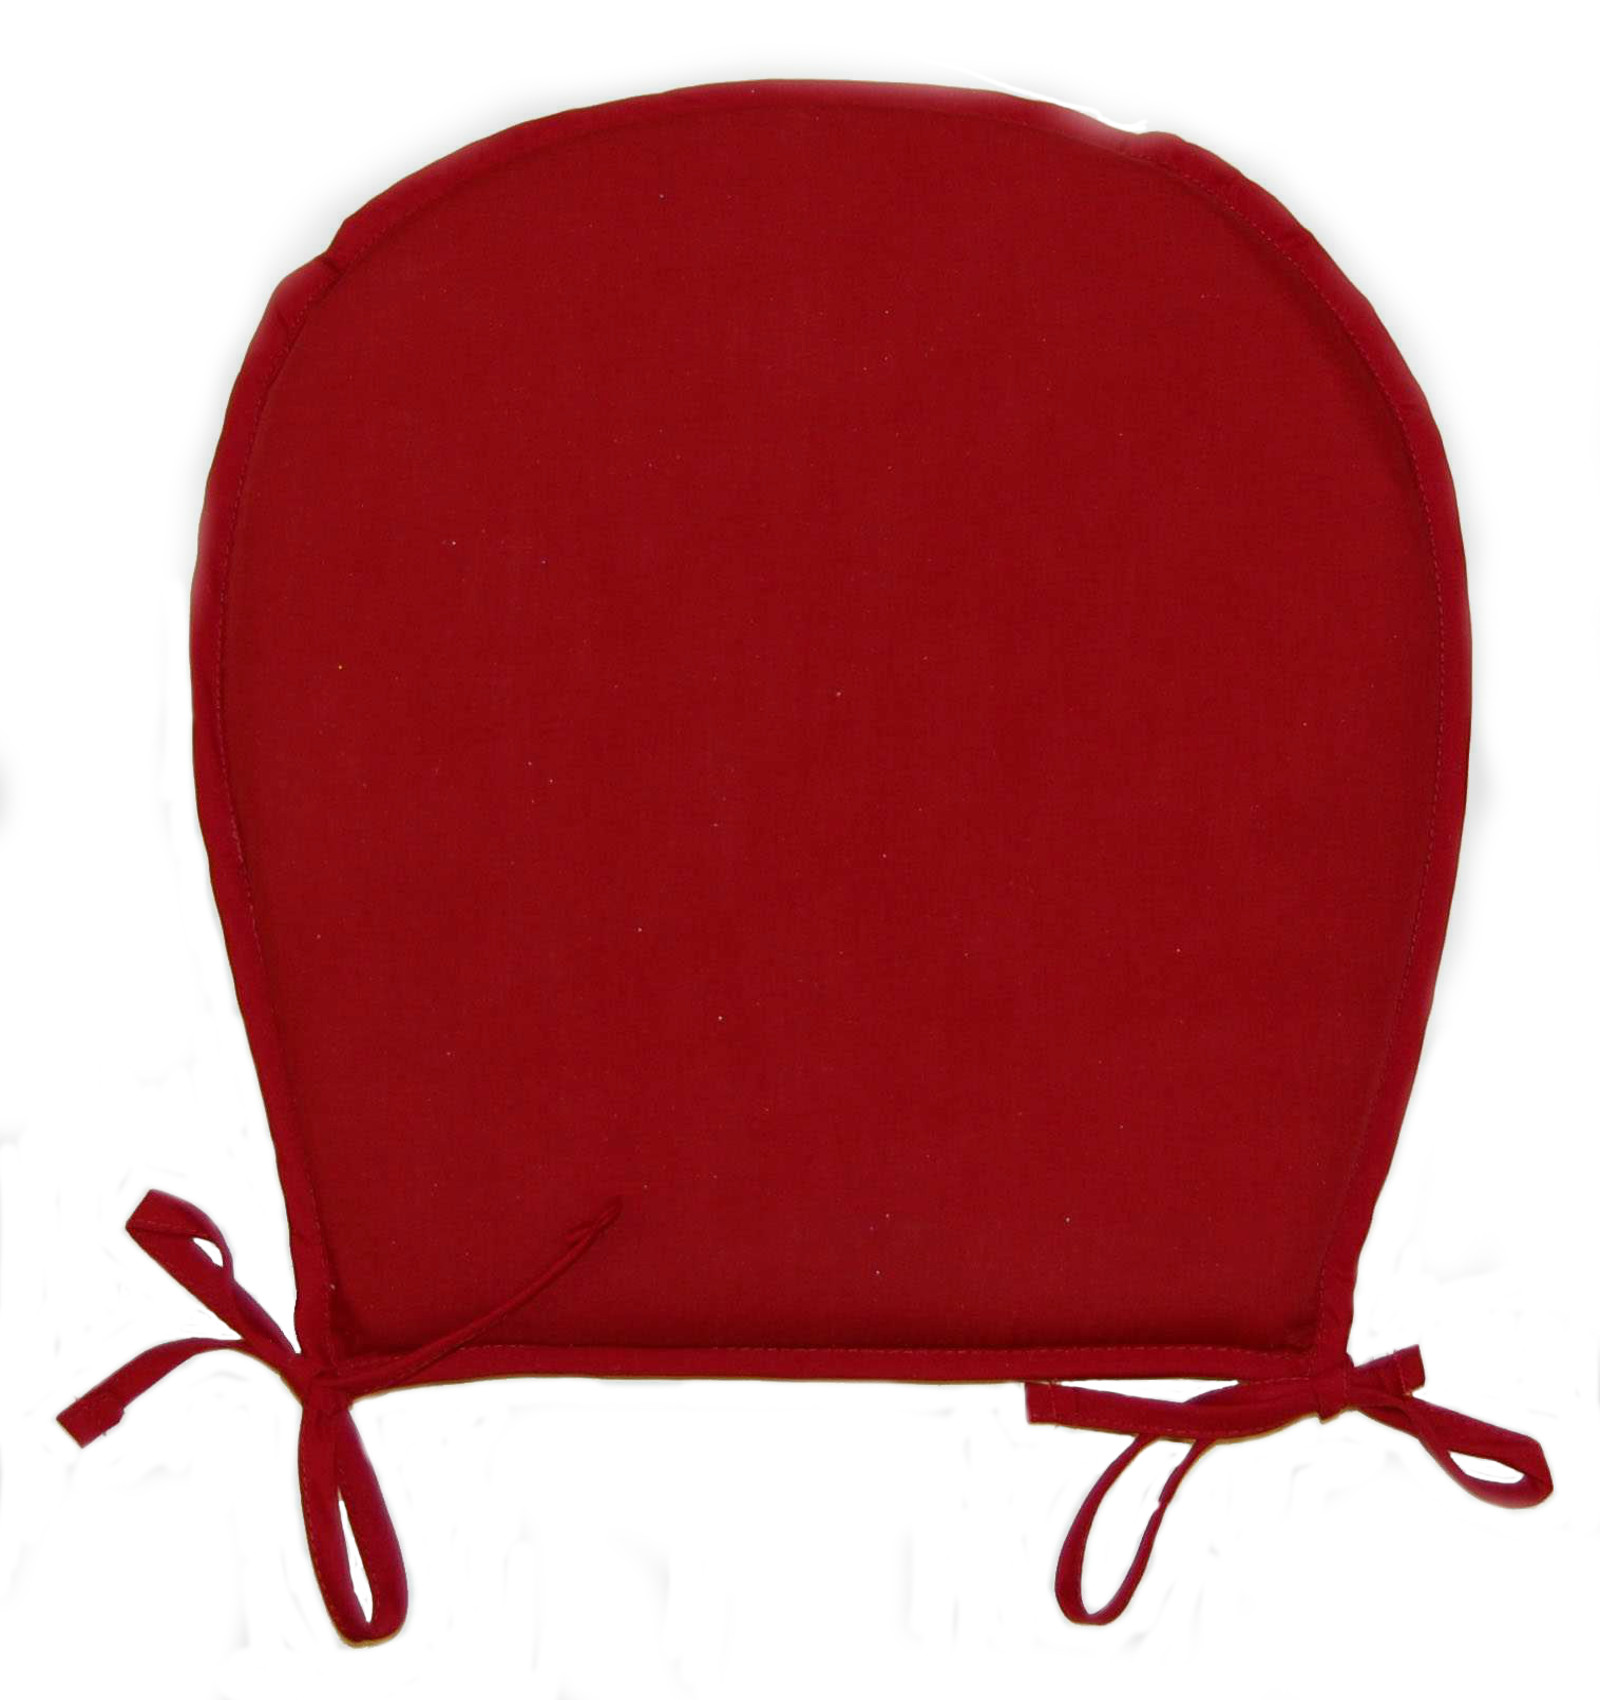 Round Seat Pads For Kitchen Chairs